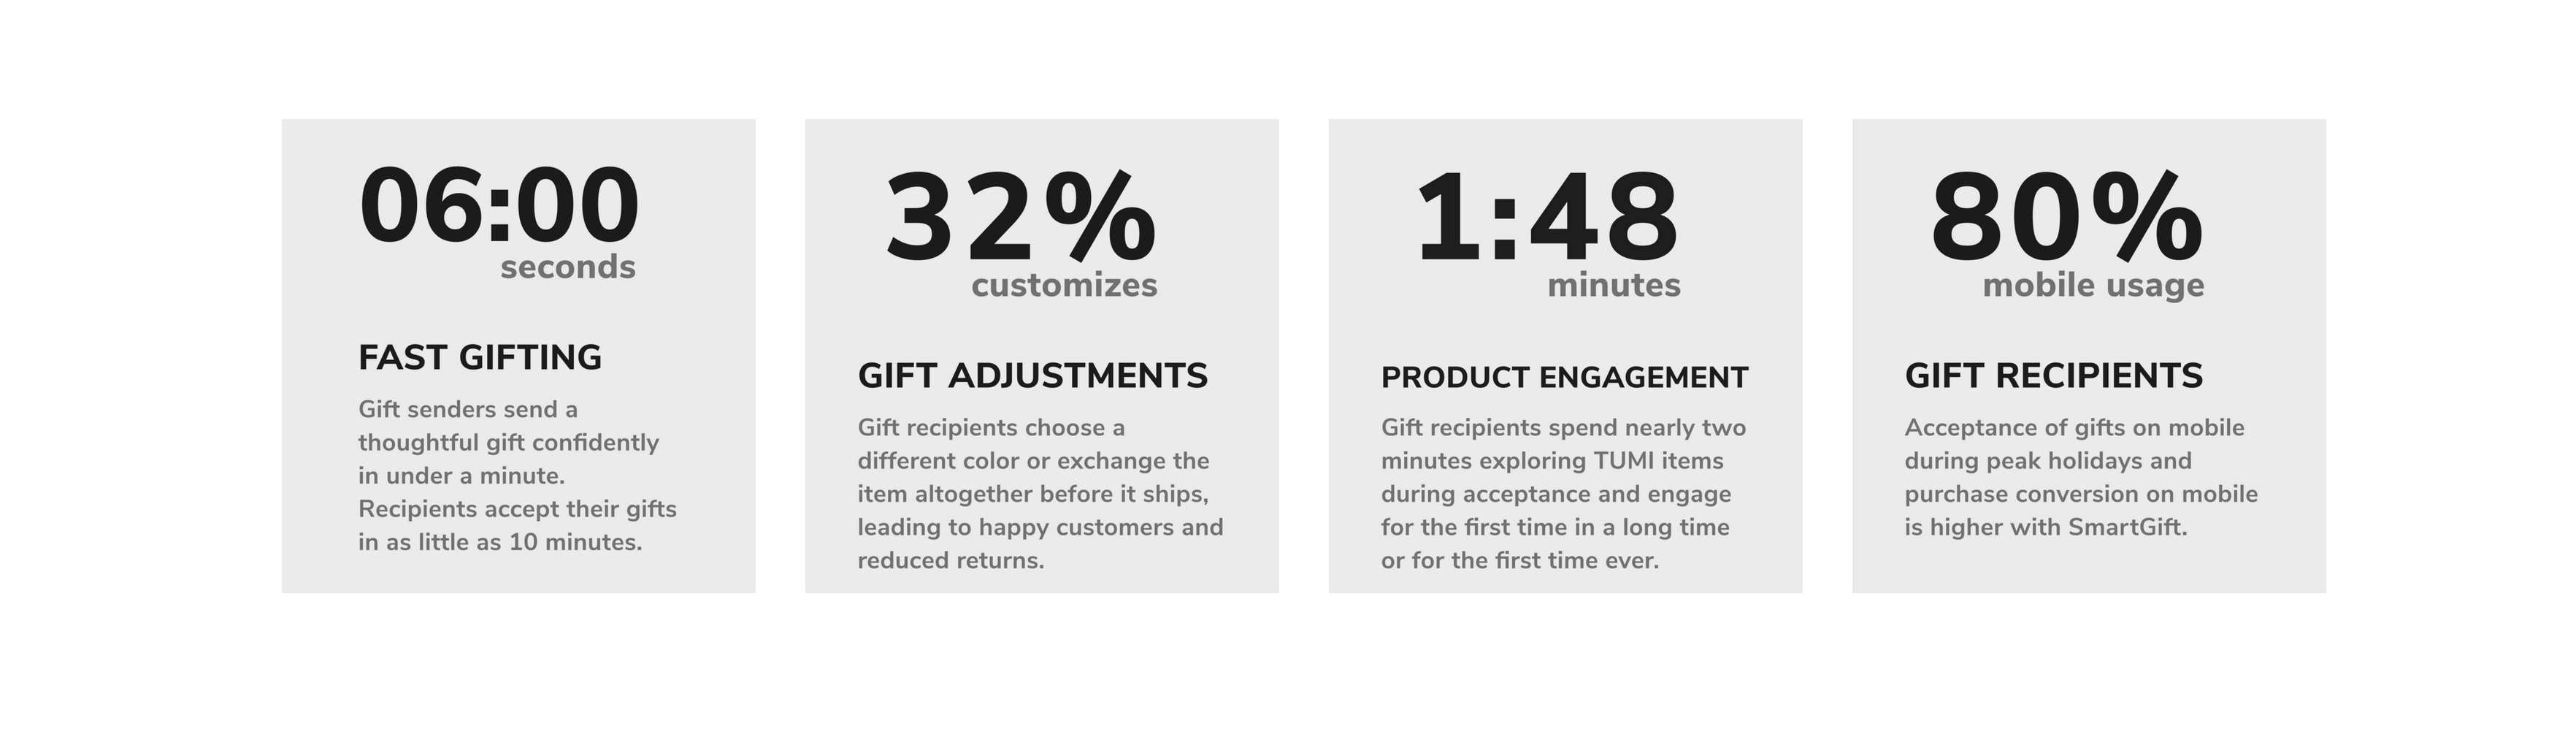 TUMI SmartGift stats from the first quarter